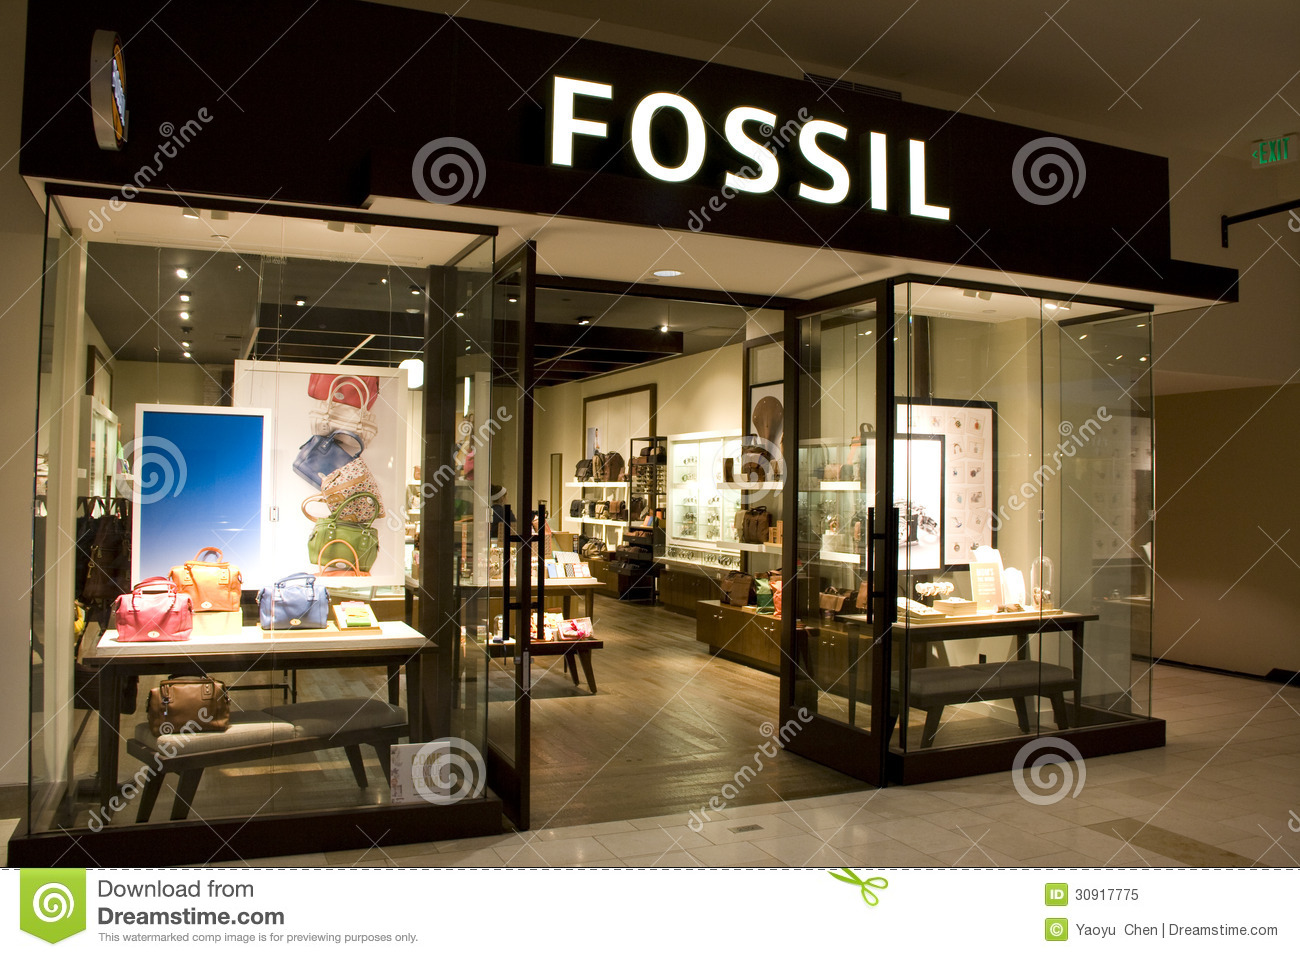 Fossil clothing store. Clothing stores